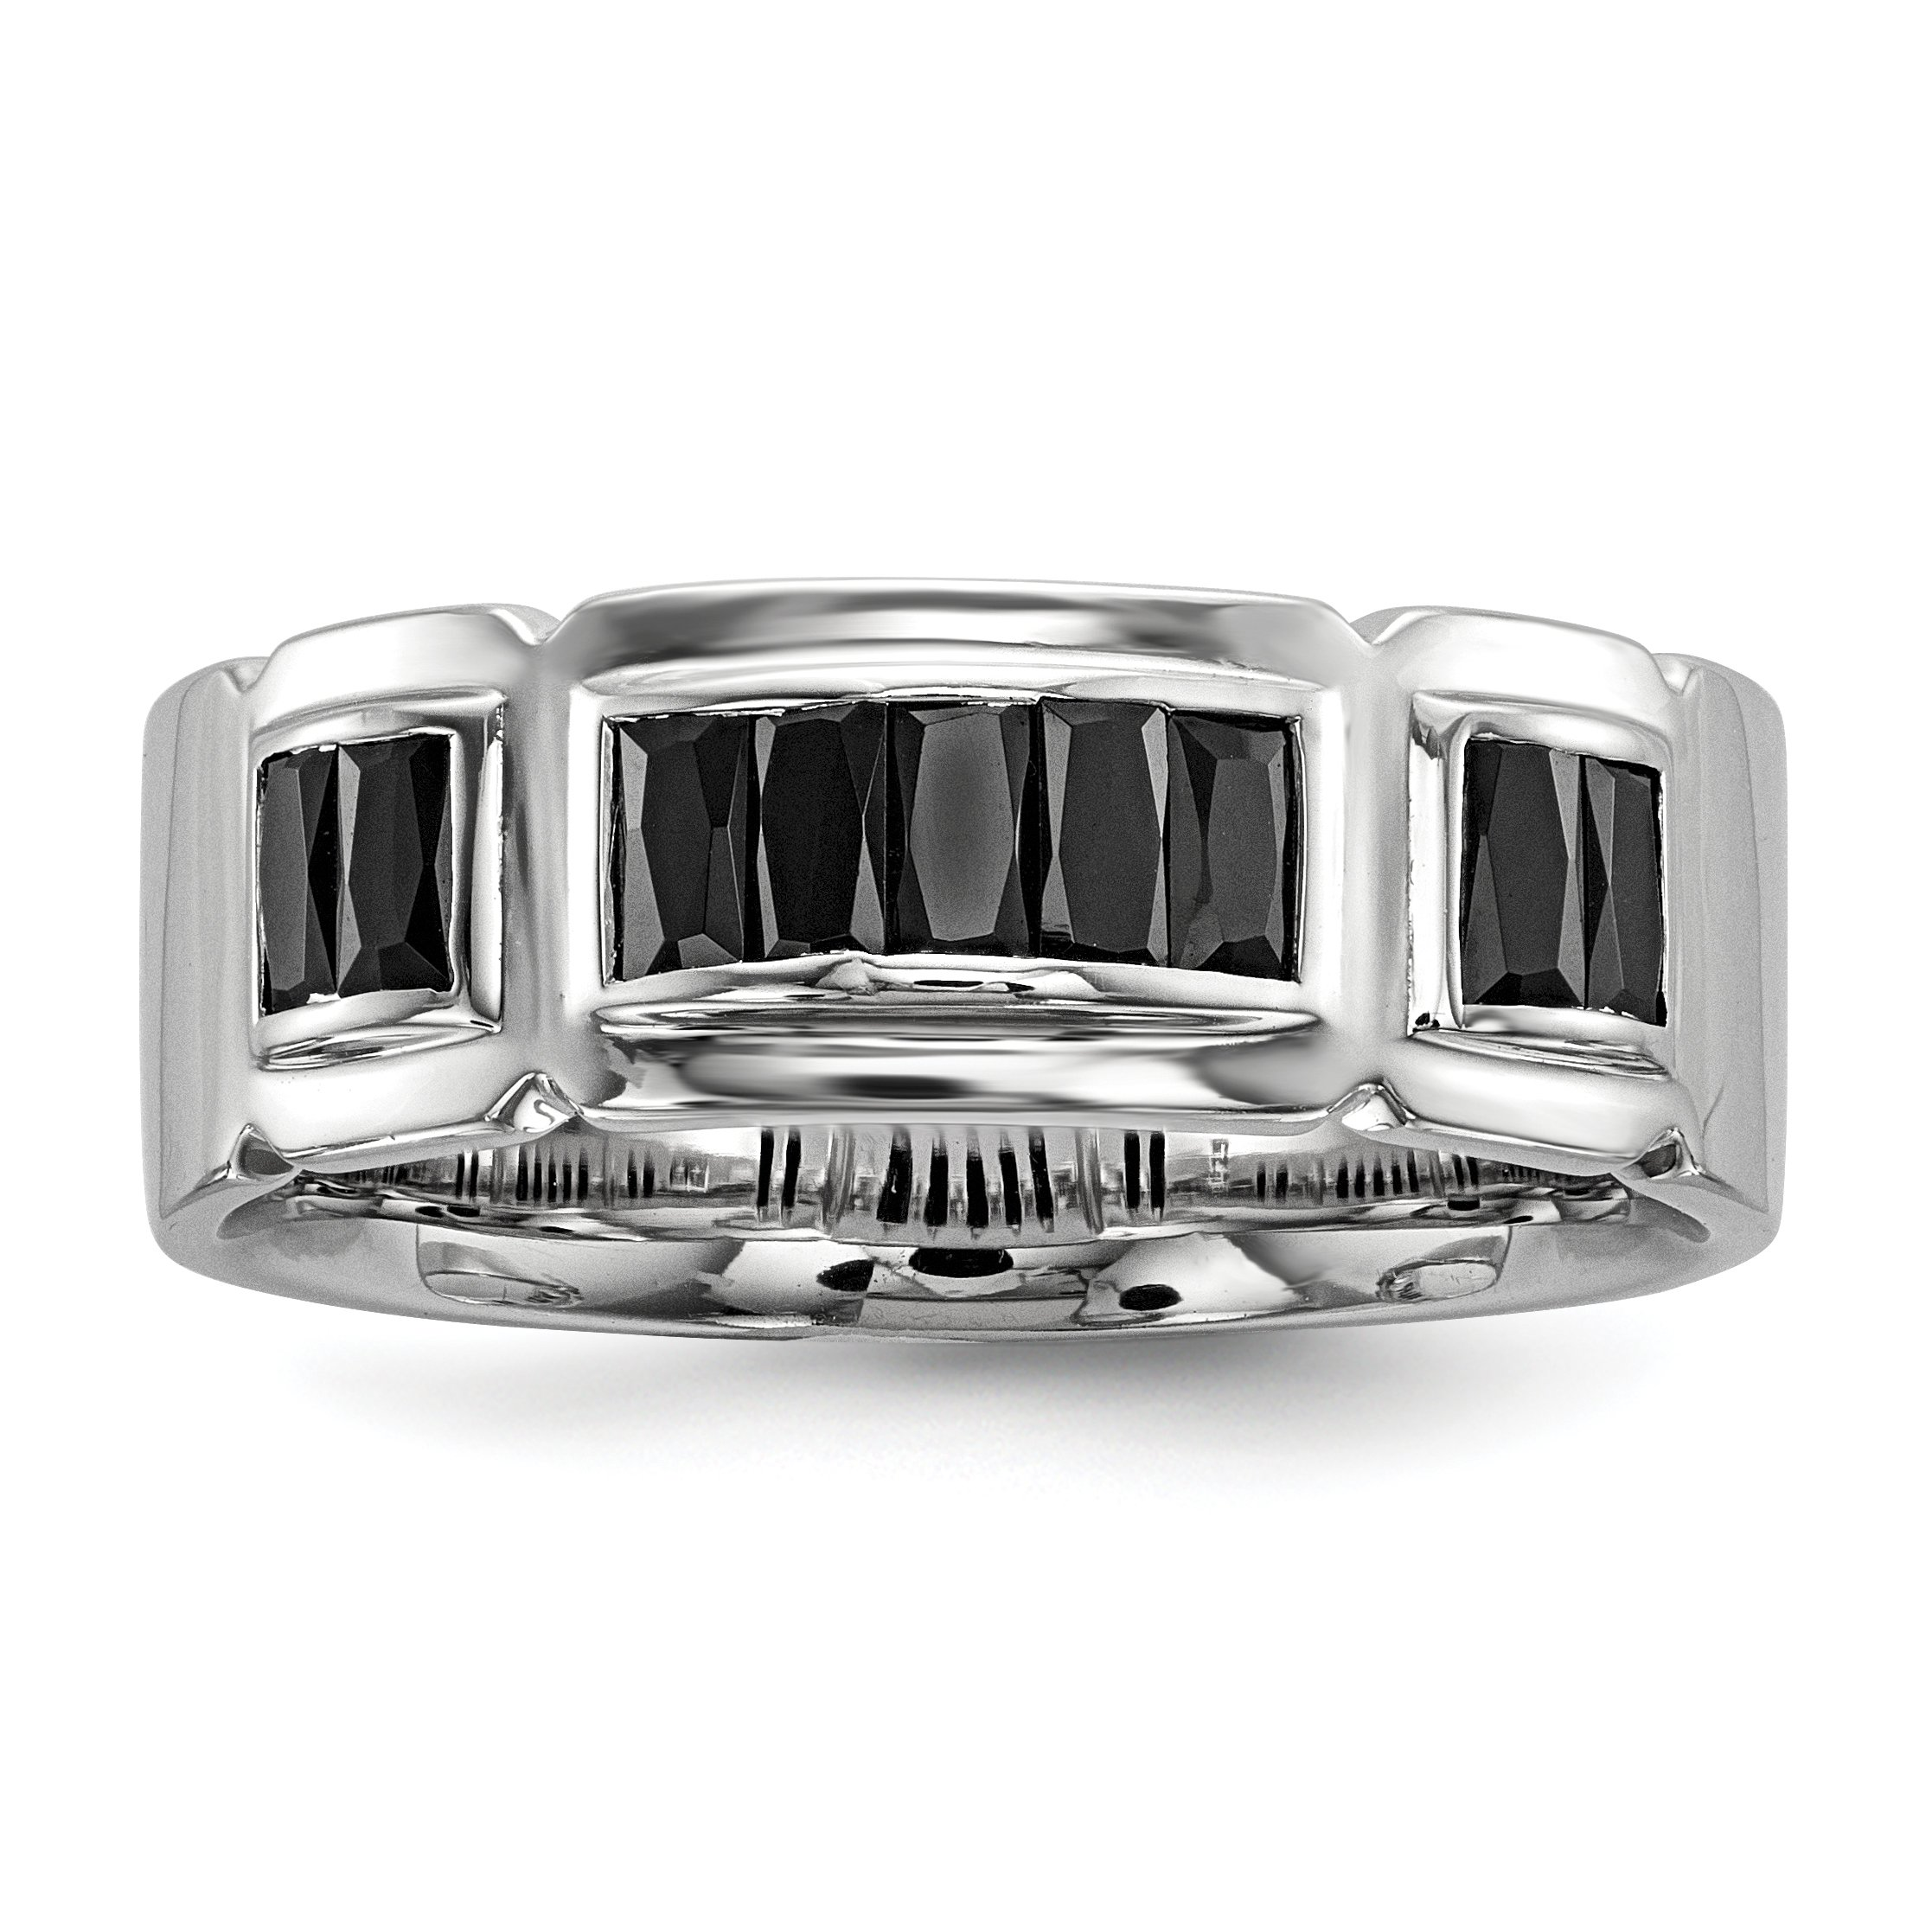 ICE CARATS 925 Sterling Silver Black Cubic Zirconia Cz Grooved Band Ring Size 9.00 Man Fine Jewelry Gift Set For Women Heart